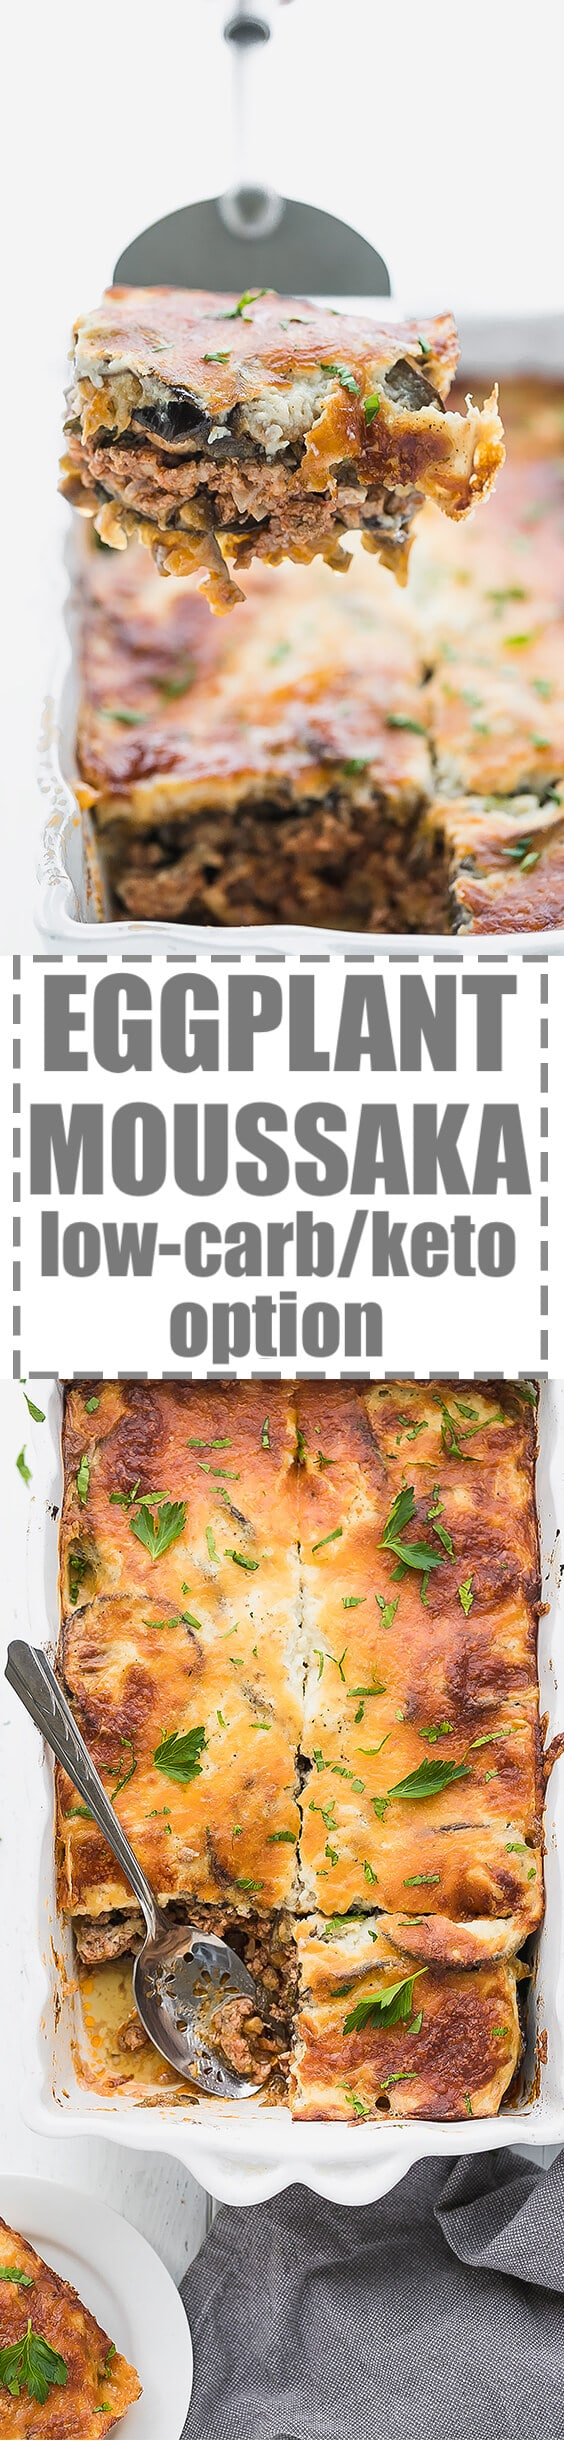 Low-Carb Keto Eggplant Moussaka Recipe - layers of eggplant with meaty sauce in between. Topped with cheesy topping. Flavorful and delicious, easy to make, Greek cuisine inspired low-carb meal.#ketorecipes #lowcarbrecipes #eggplant #eggplantmoussaka #Greekmoussaka